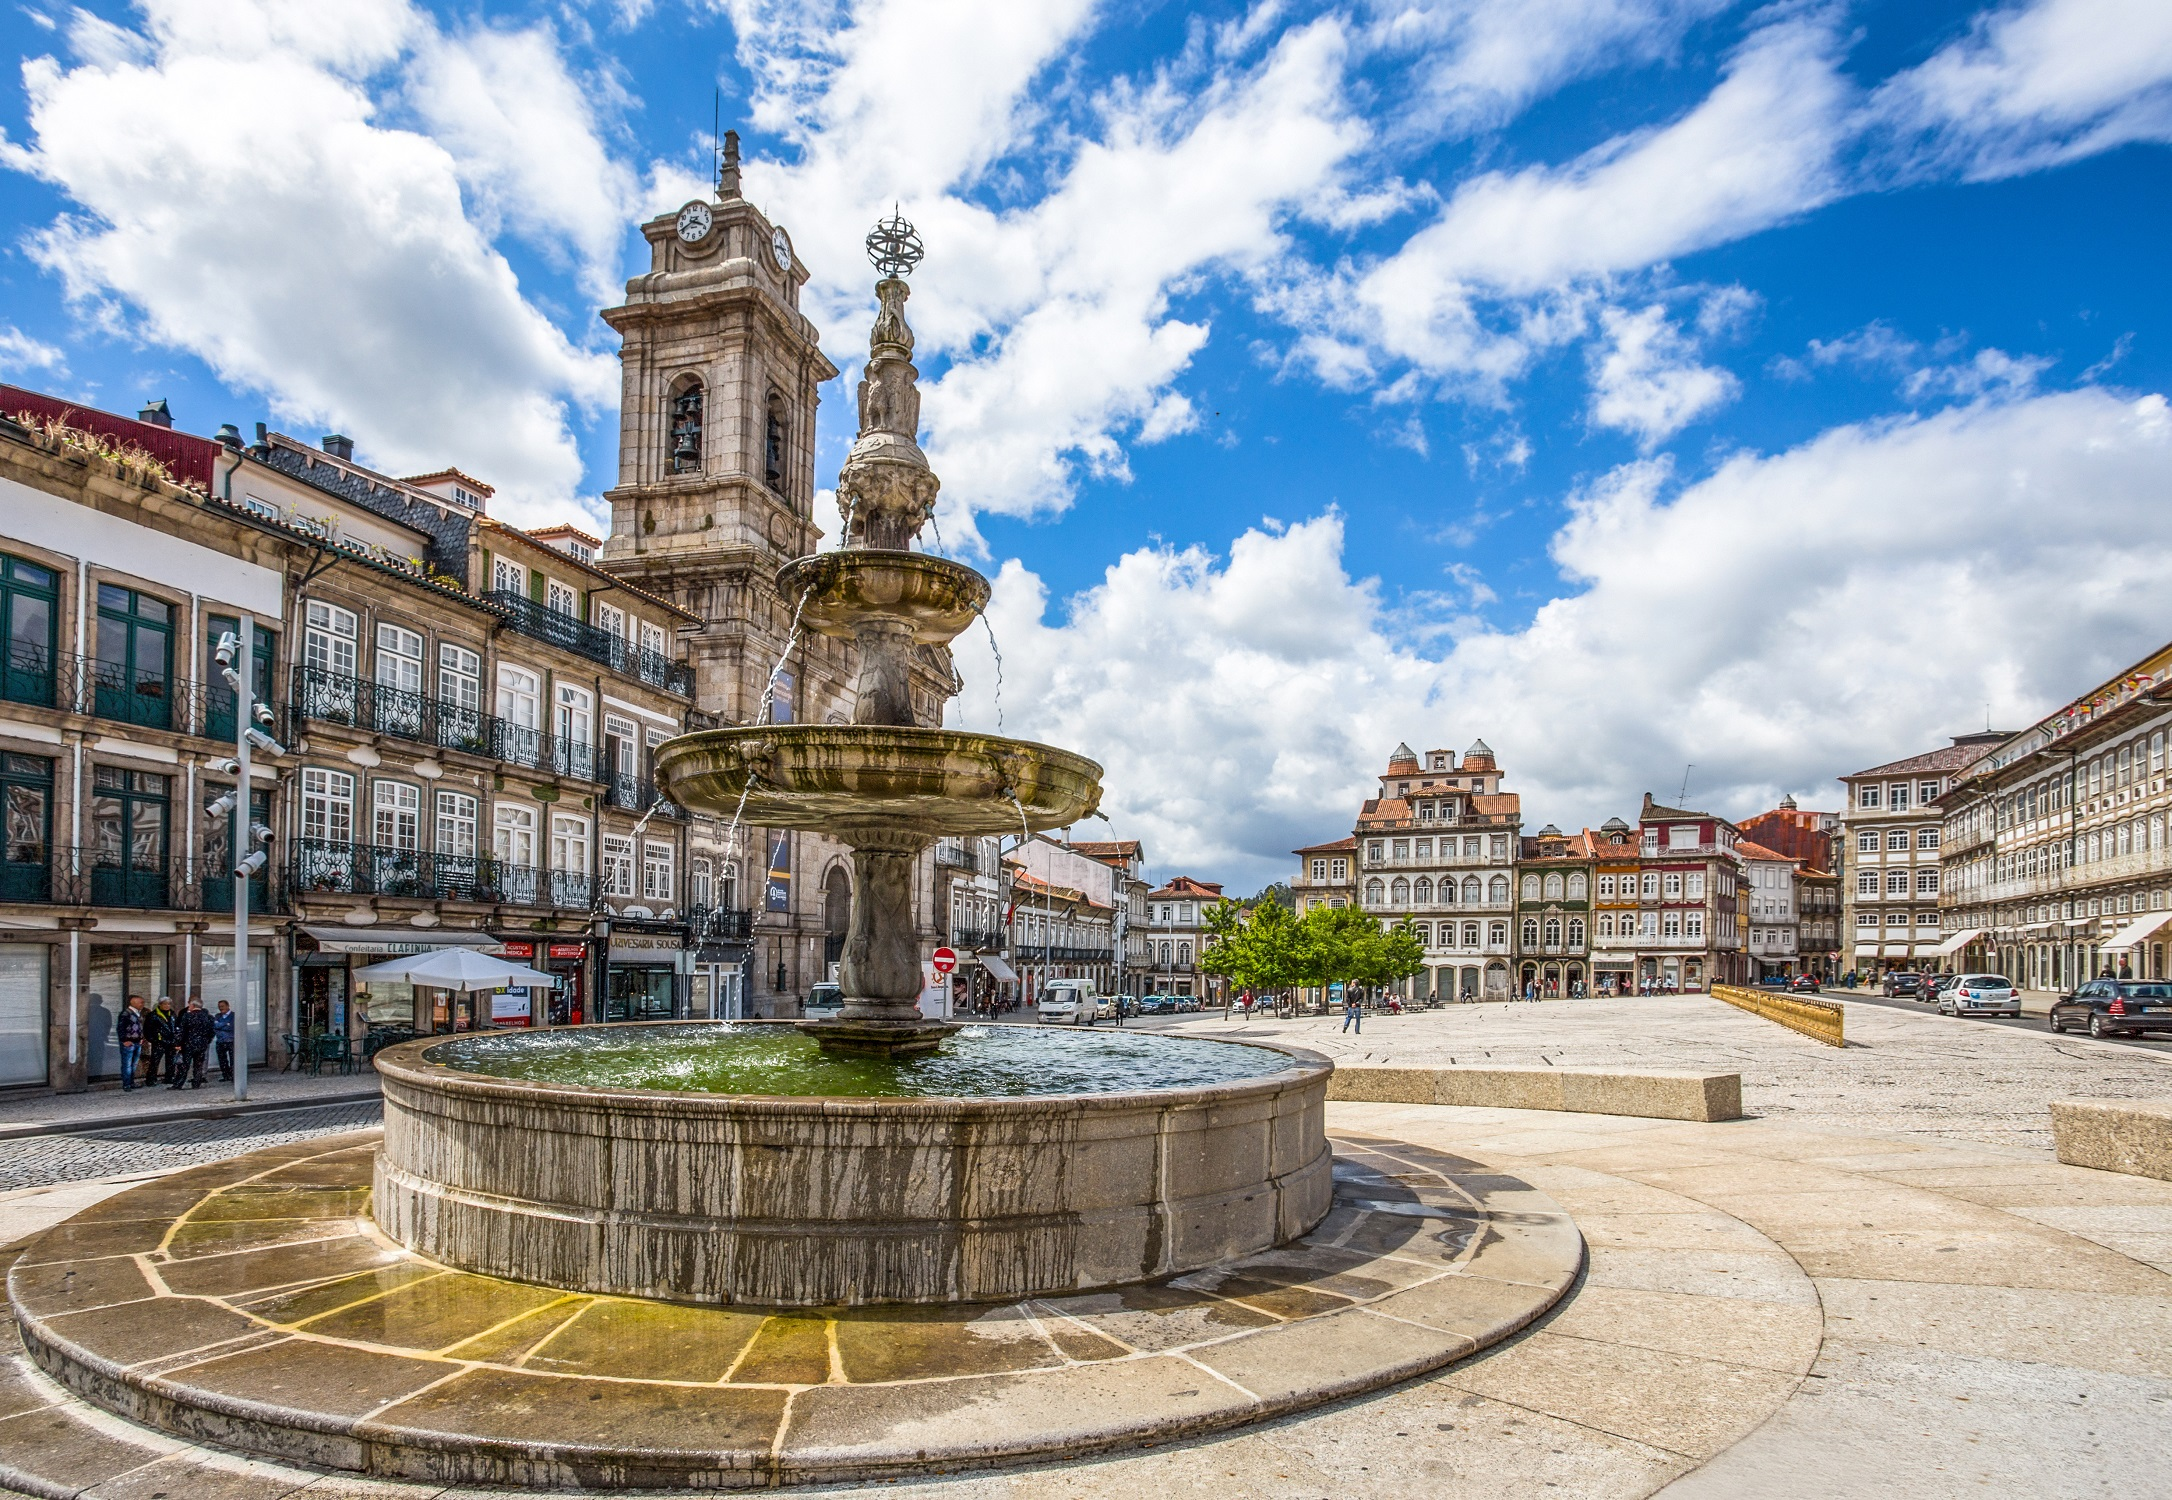 Toural Square in Guimarães, Portugal